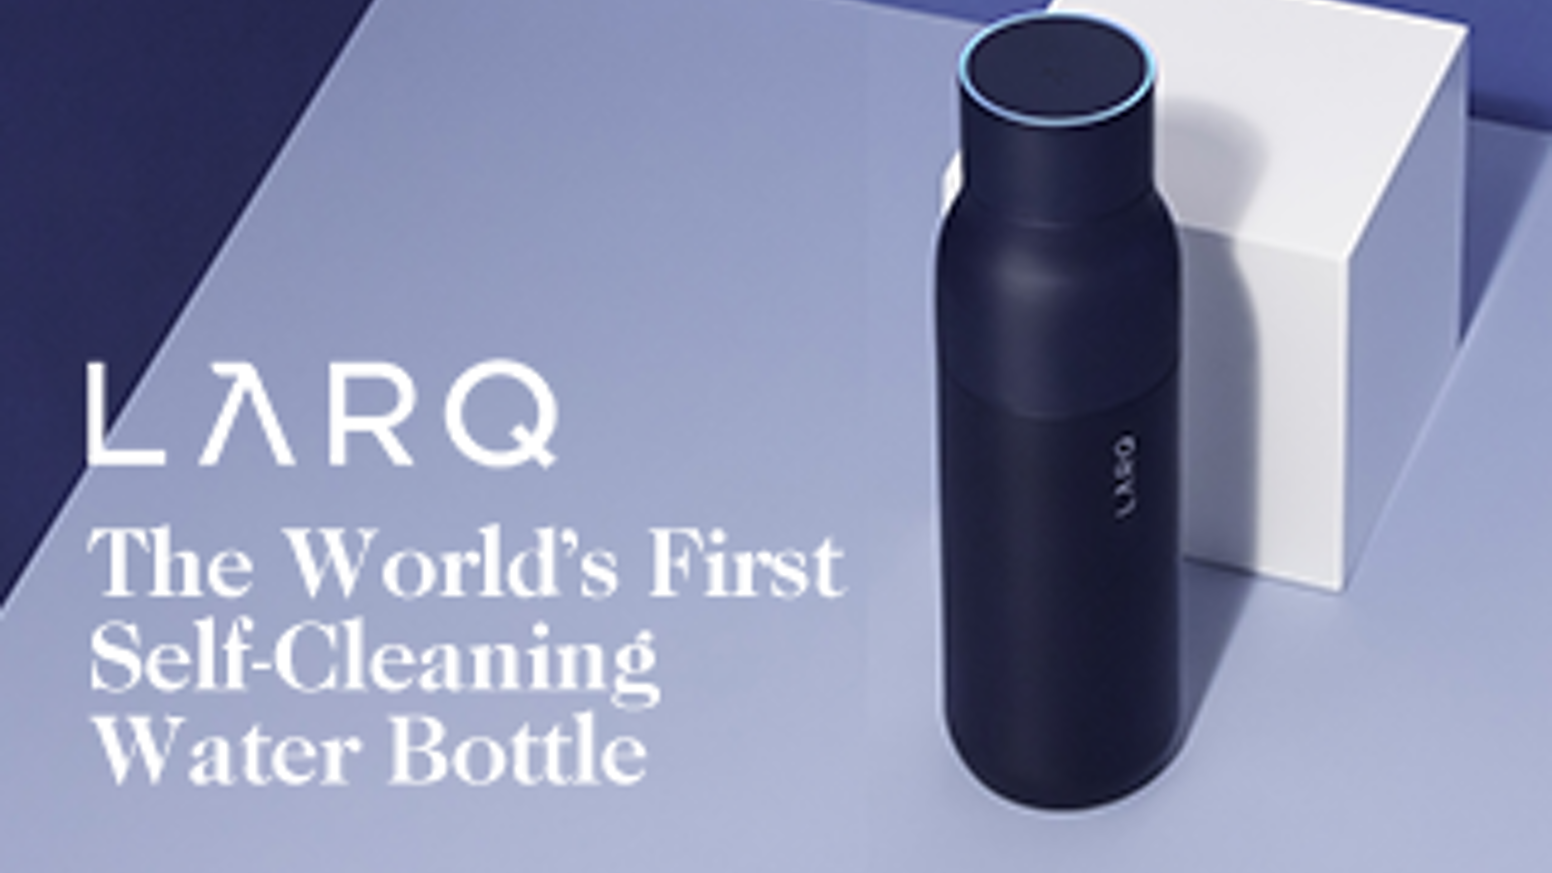 No more stinky water bottles.  LARQ harness UV-C LED light to eliminate 99.9999% of bio-contaminants from your water and bottle.